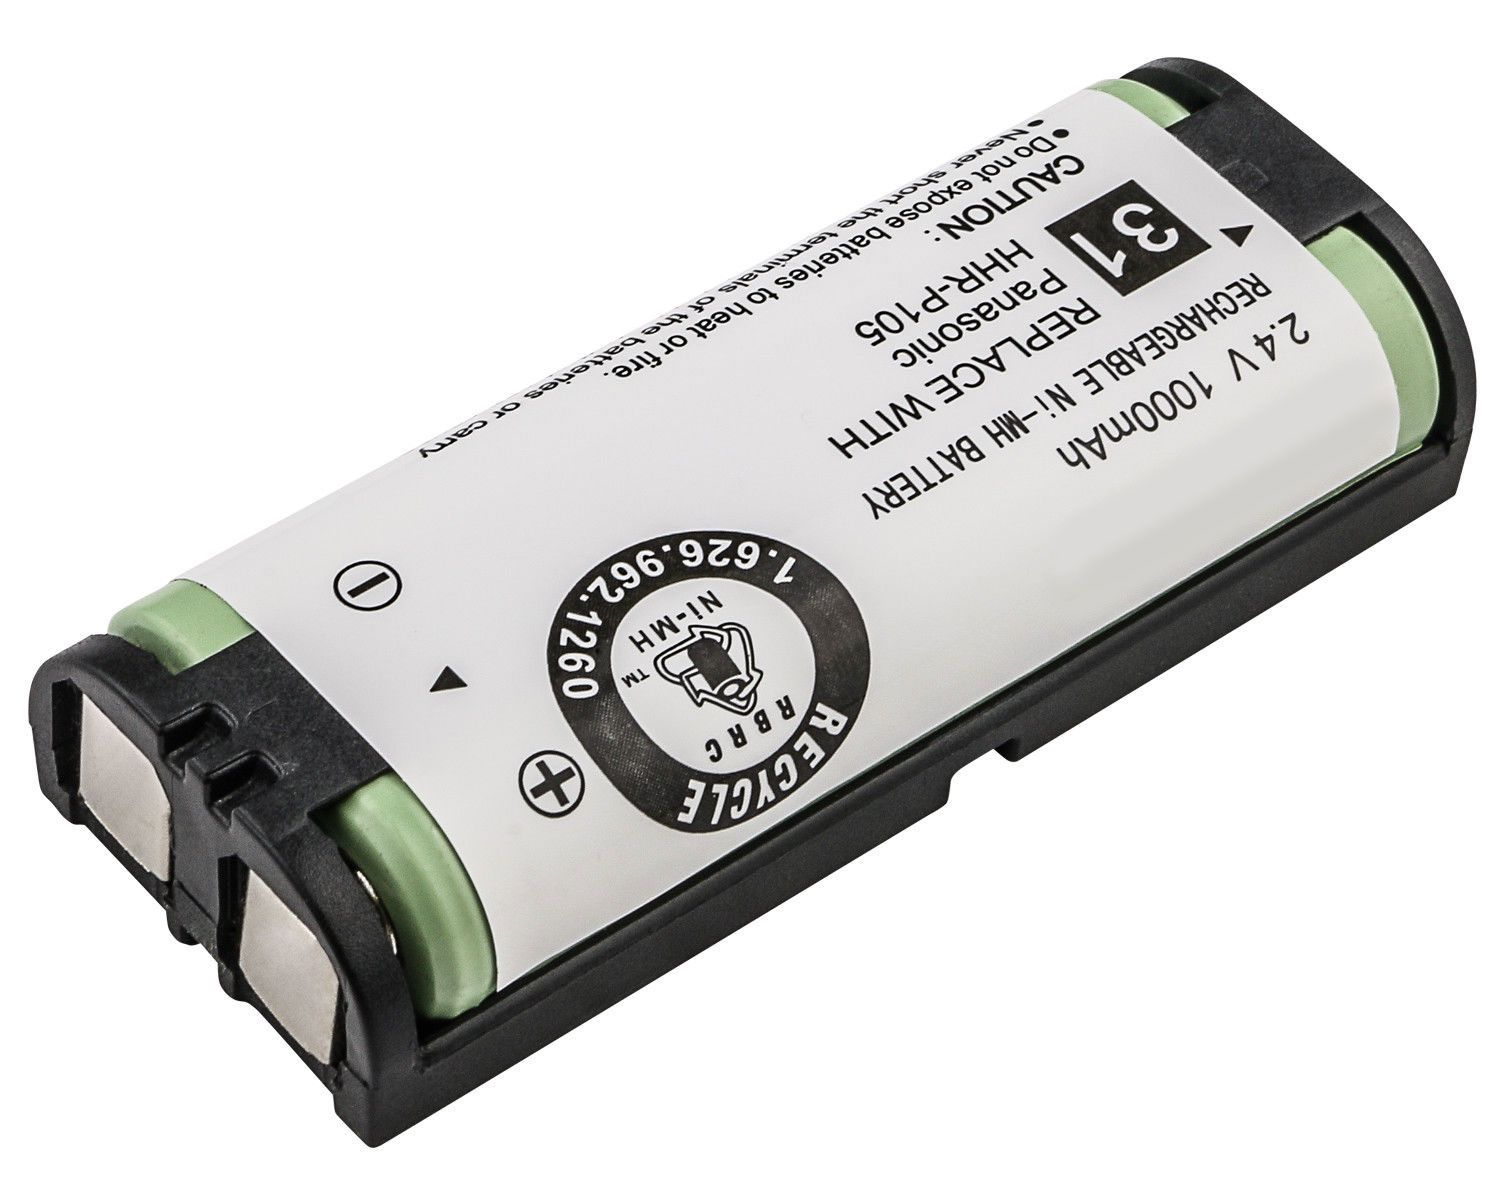 Avaya D160 Replacement Battery